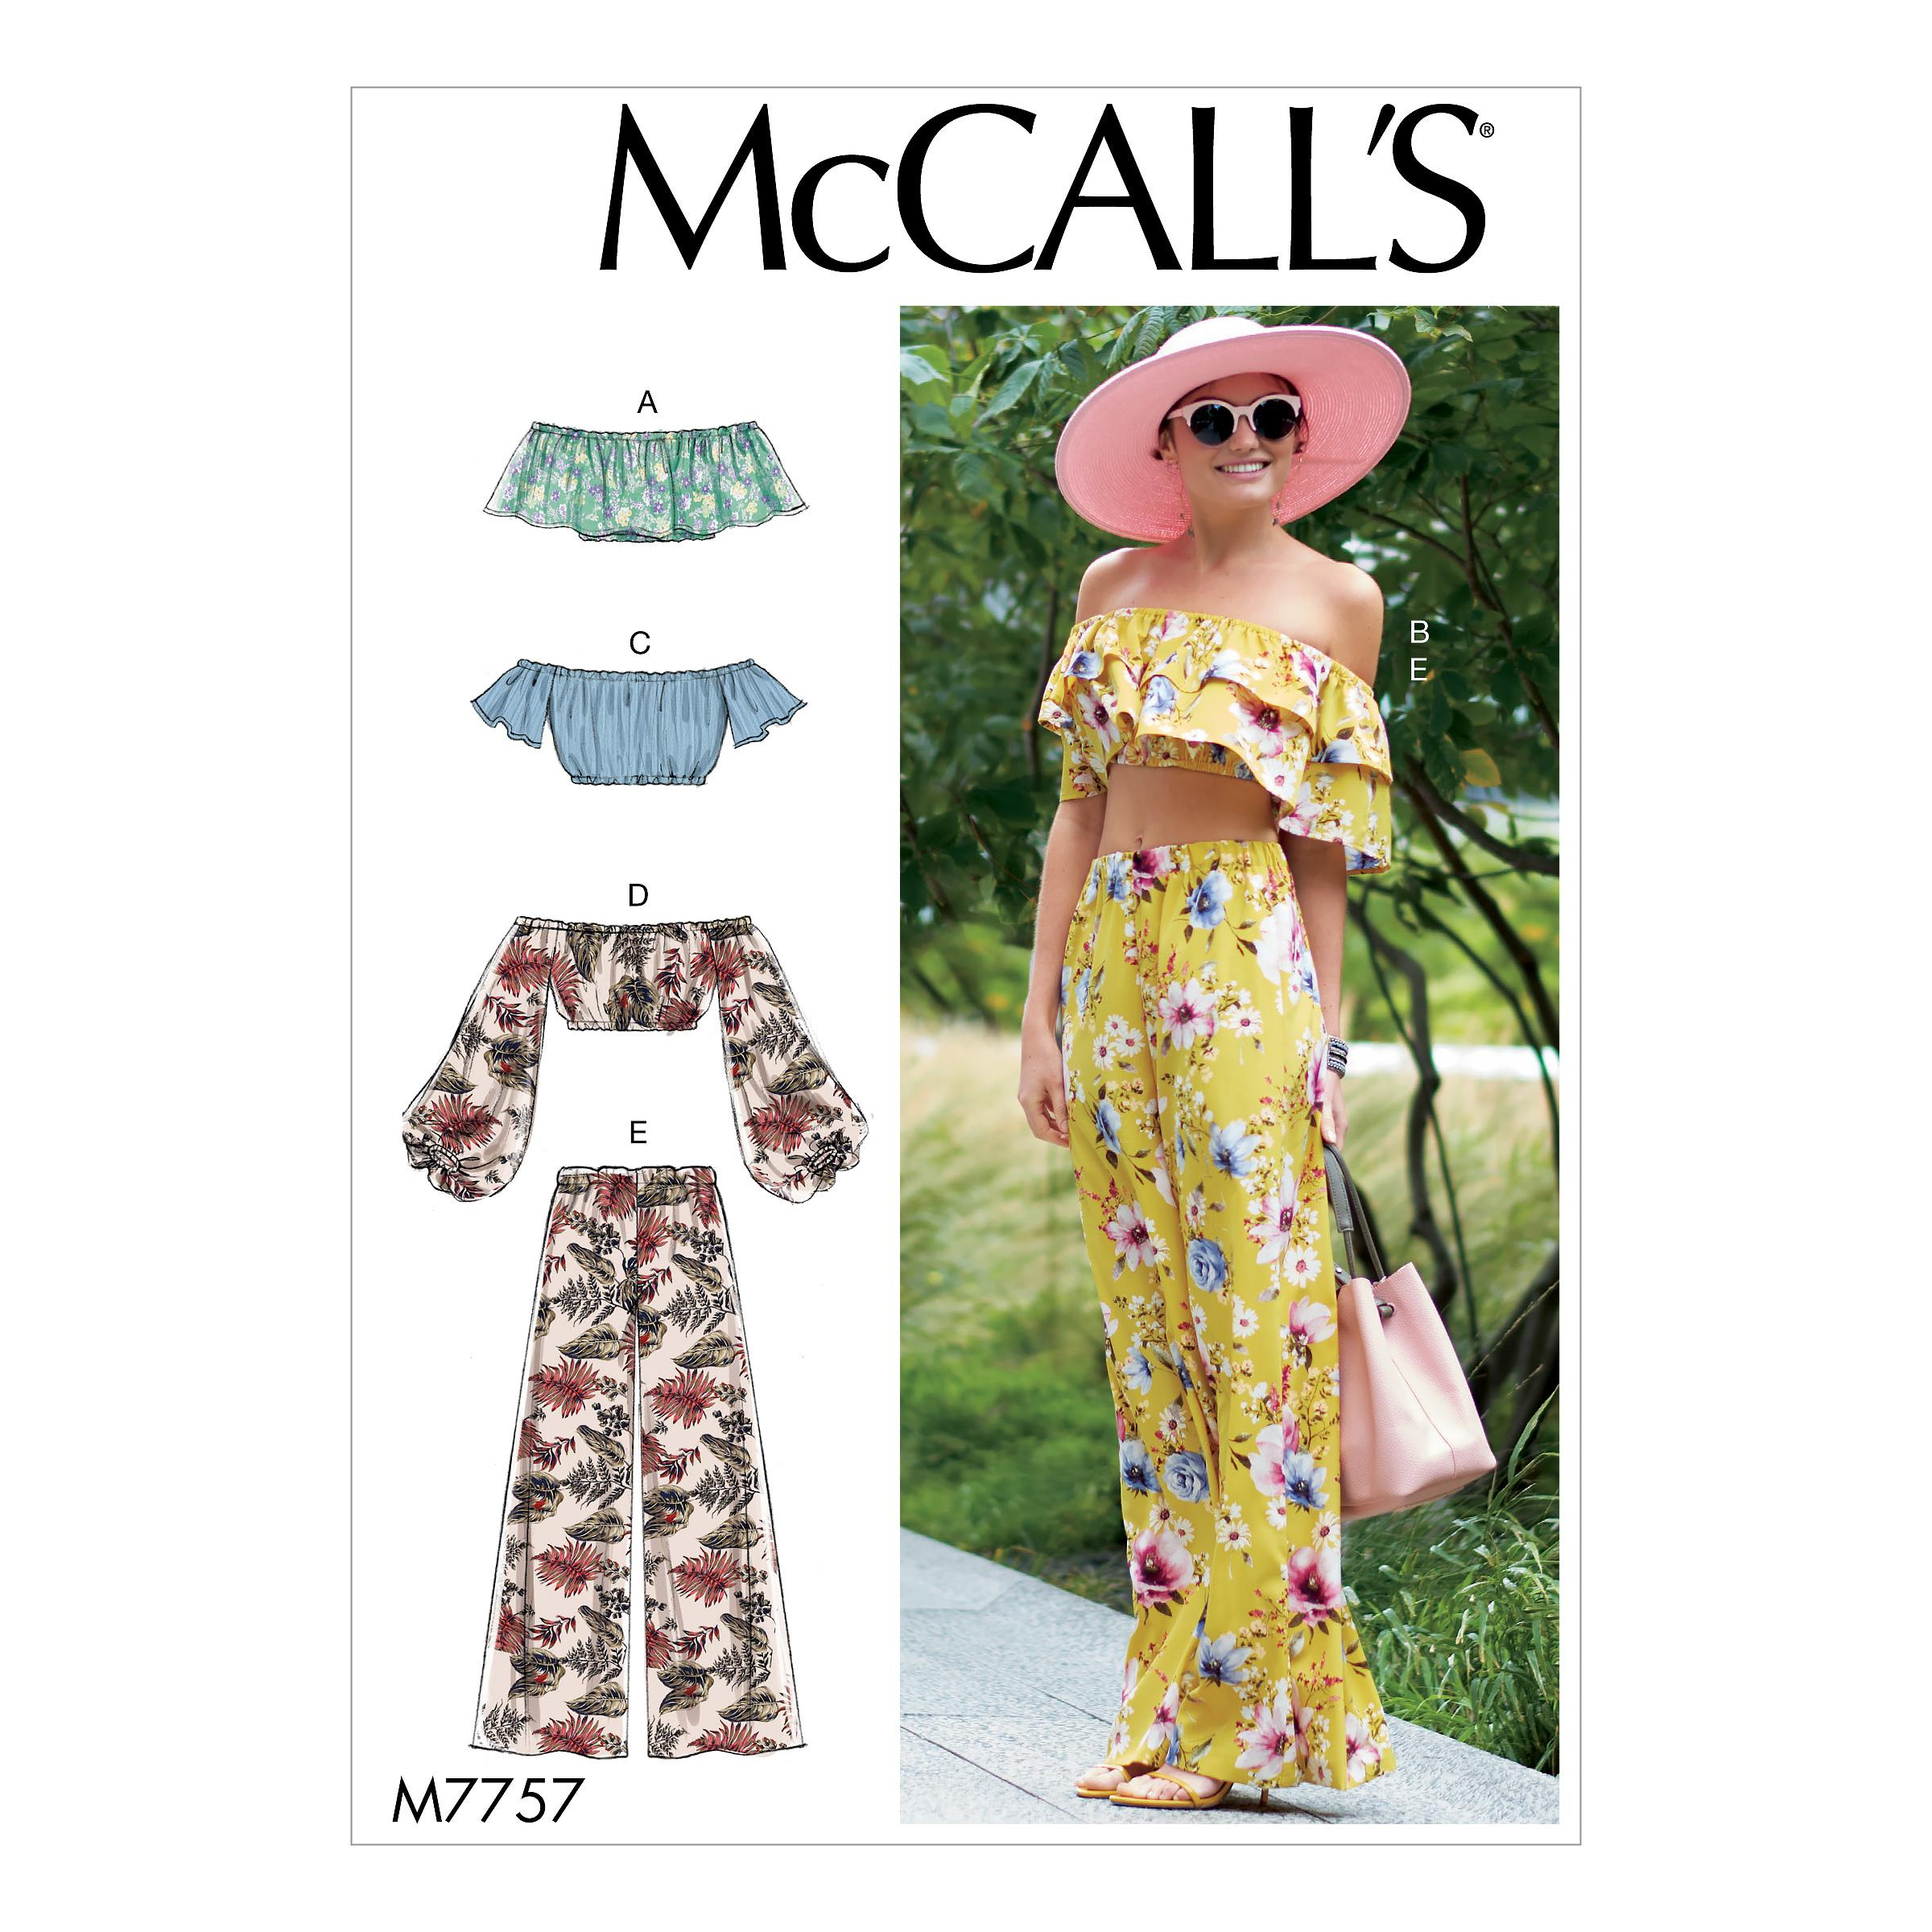 McCalls M7757 Misses Tops, Misses Pants, Jumpsuits & Shorts, Misses Coordinates